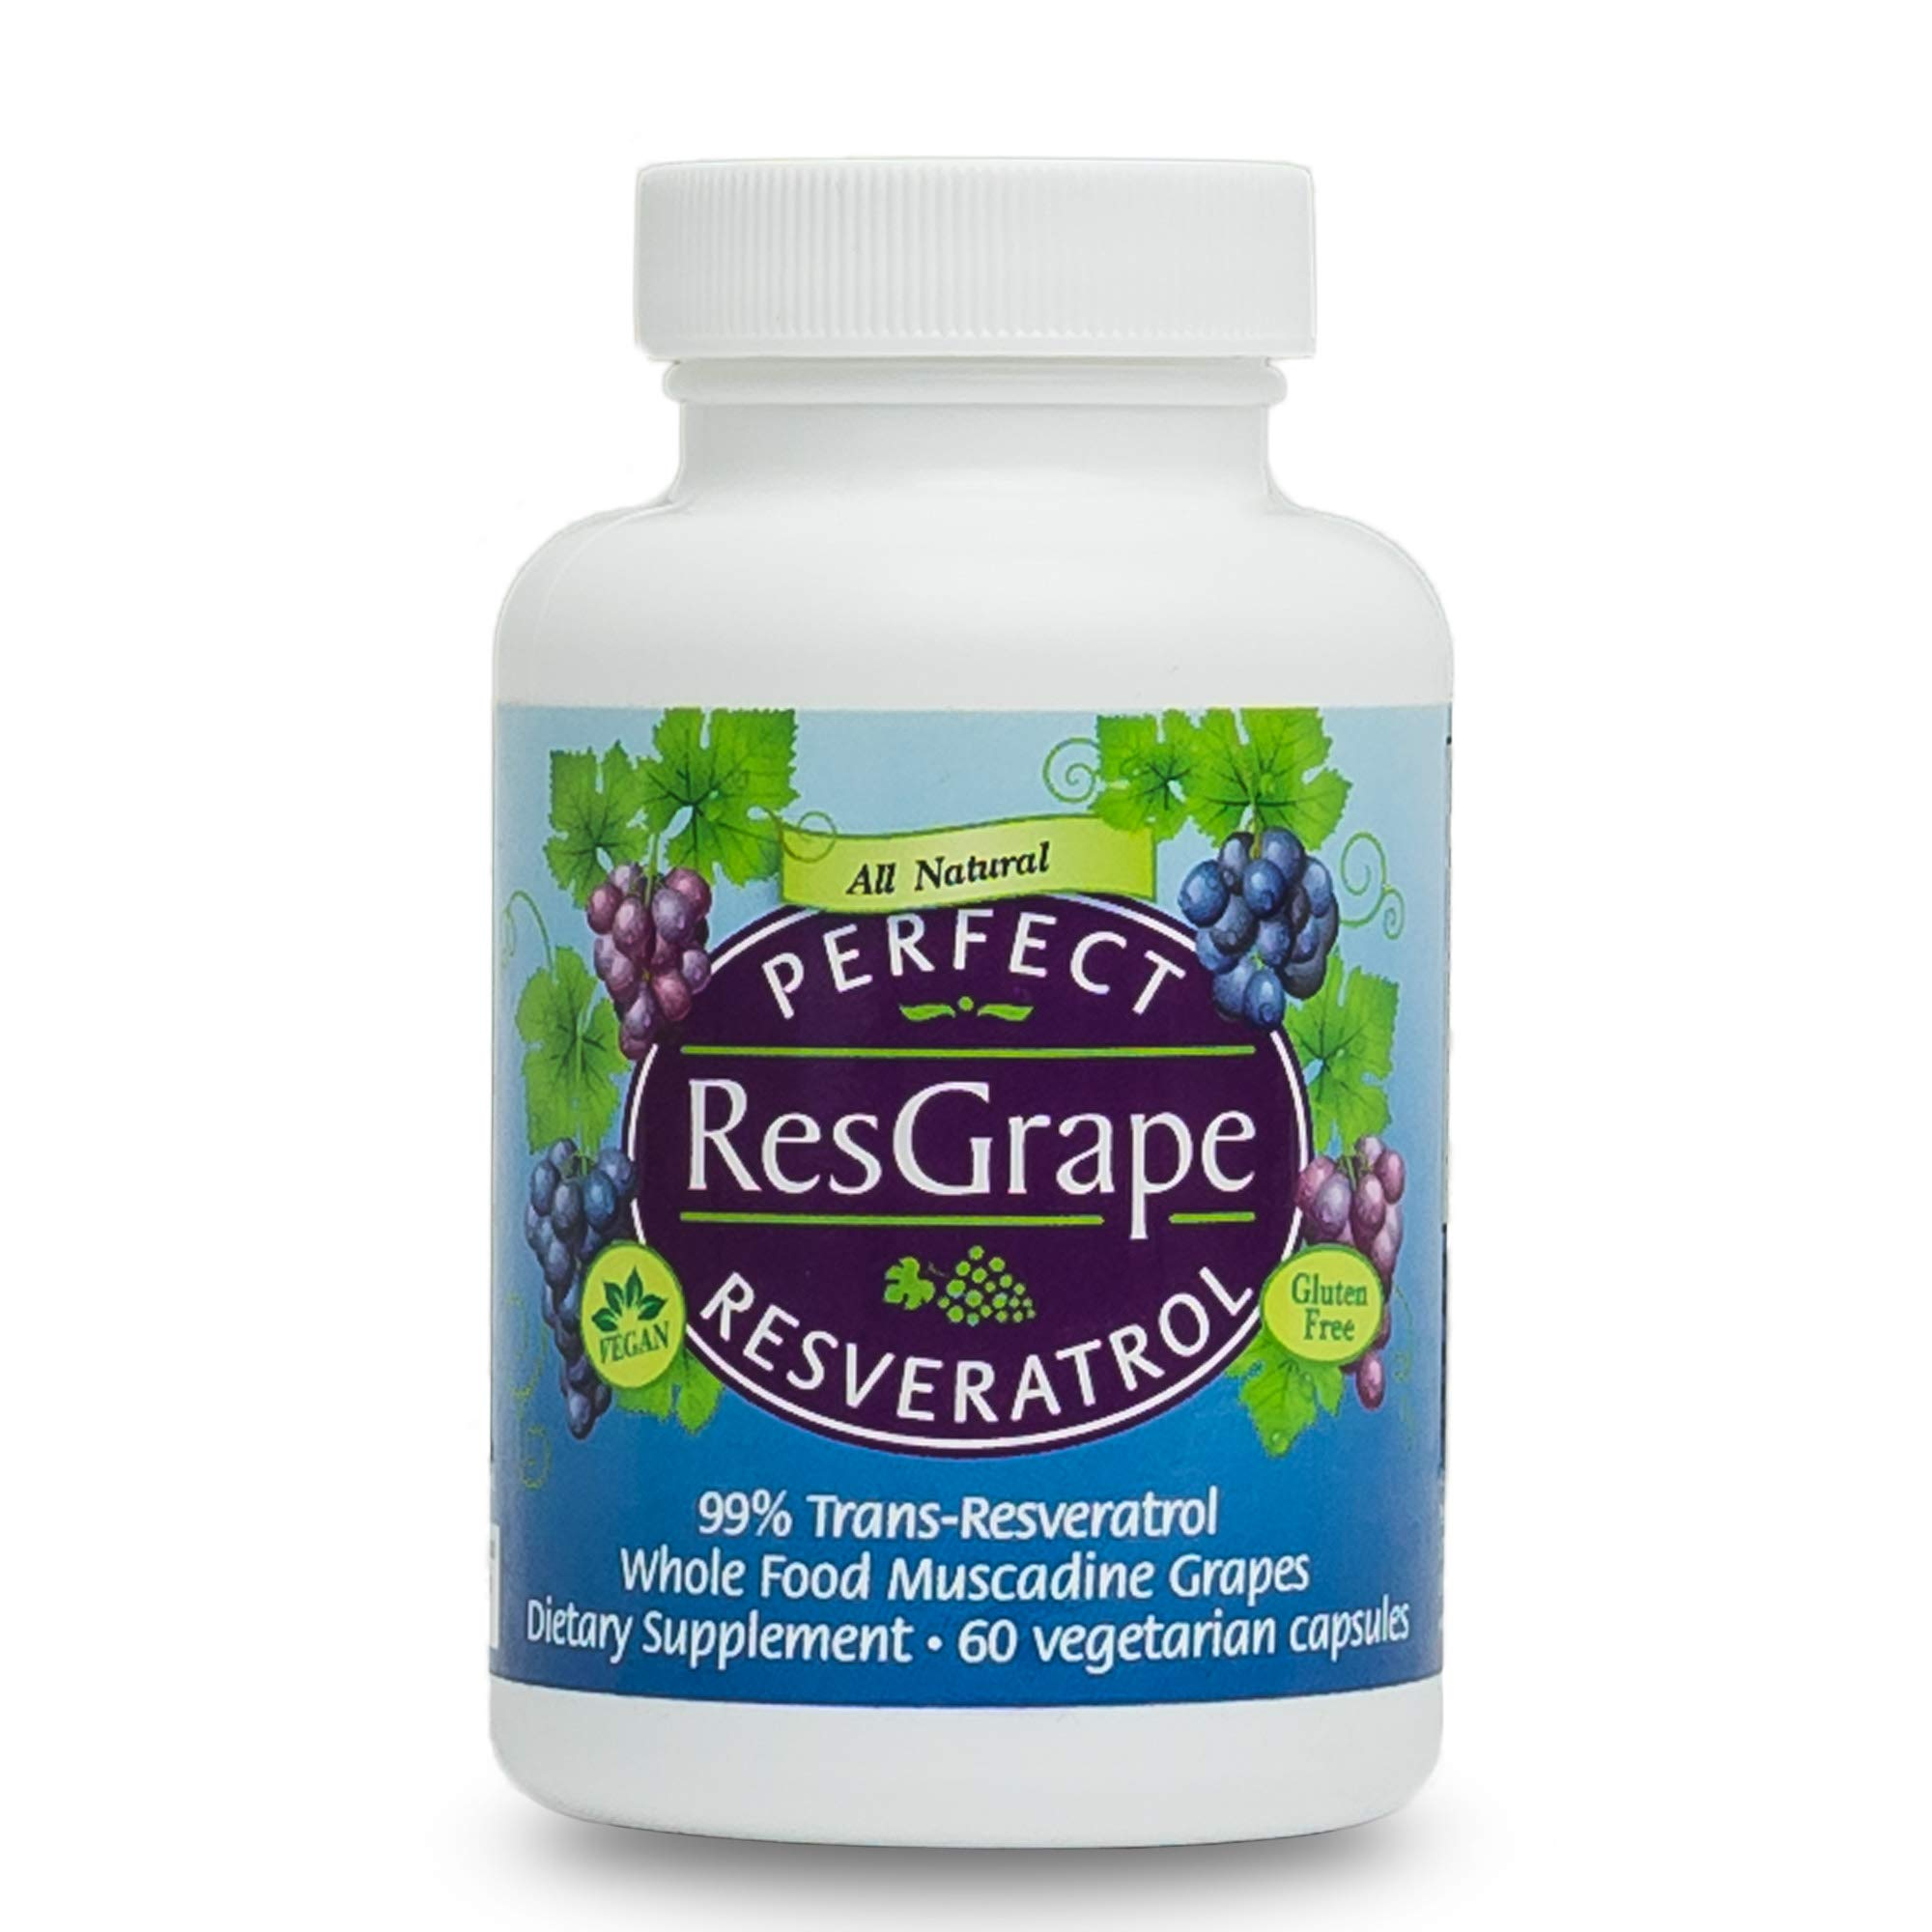 Perfect Resgrape Resveratrol Supplement - 200mg 99% Trans-Resvertarol - Made From Organic Muscadine Grapes - 60 Vegetable Capsules